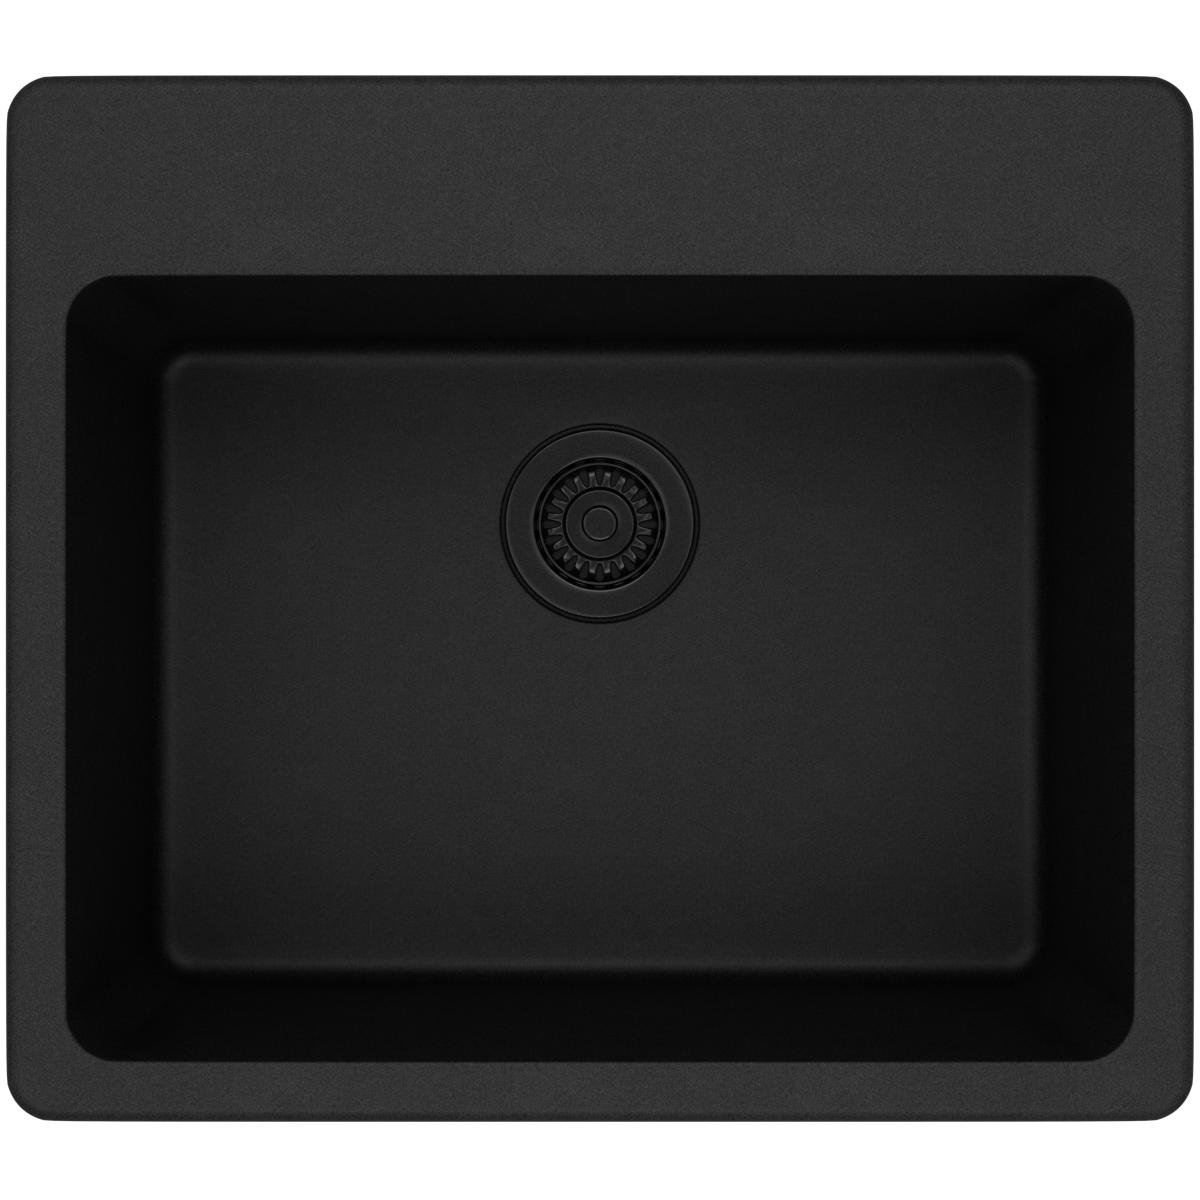 Elkay Quartz Classic ELG2522BK0 Black Single Bowl Top Mount Sink